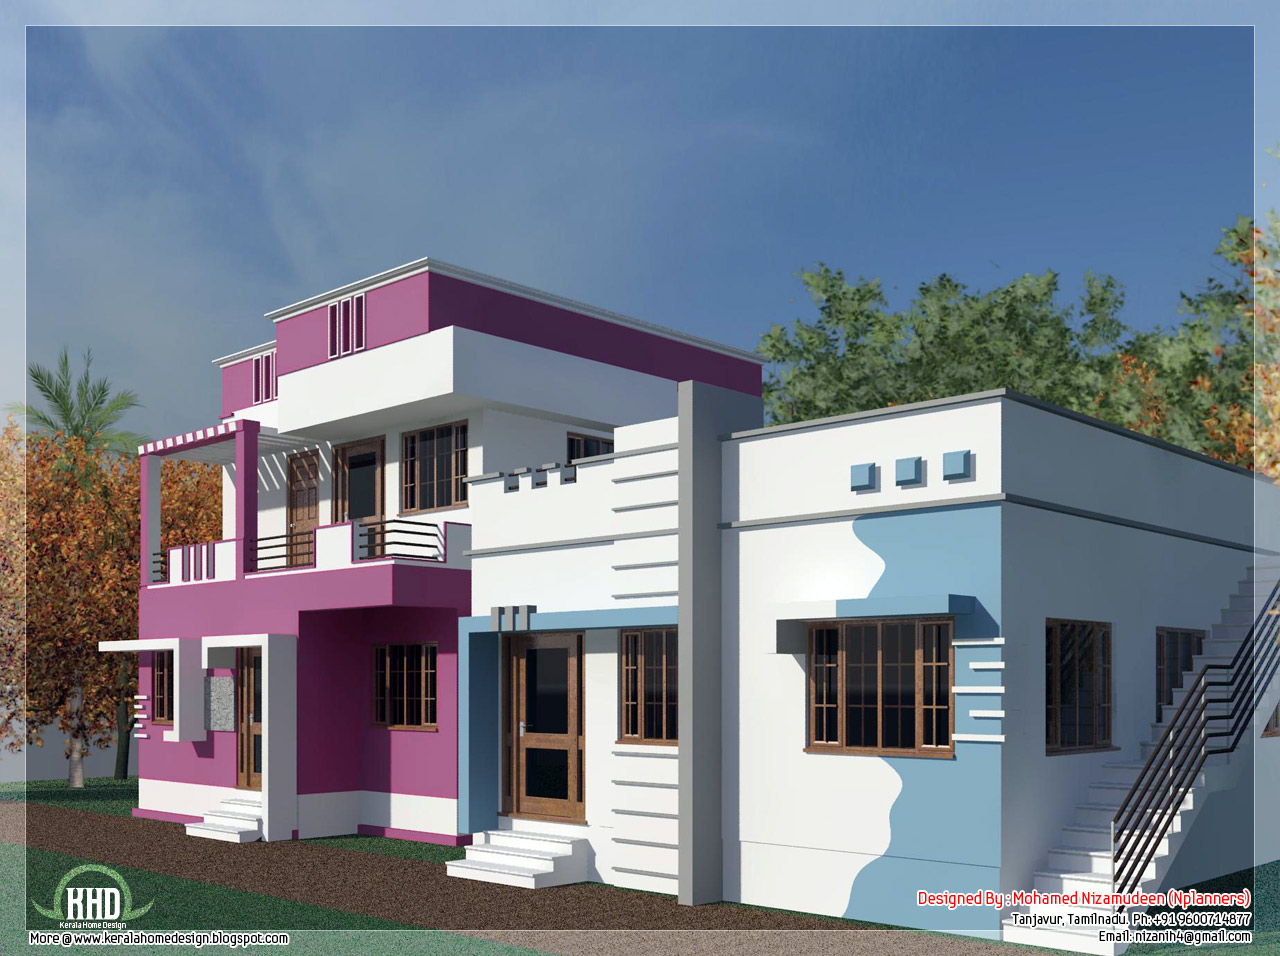 Tamilnadu model home design in 3000 kerala home for House front model design